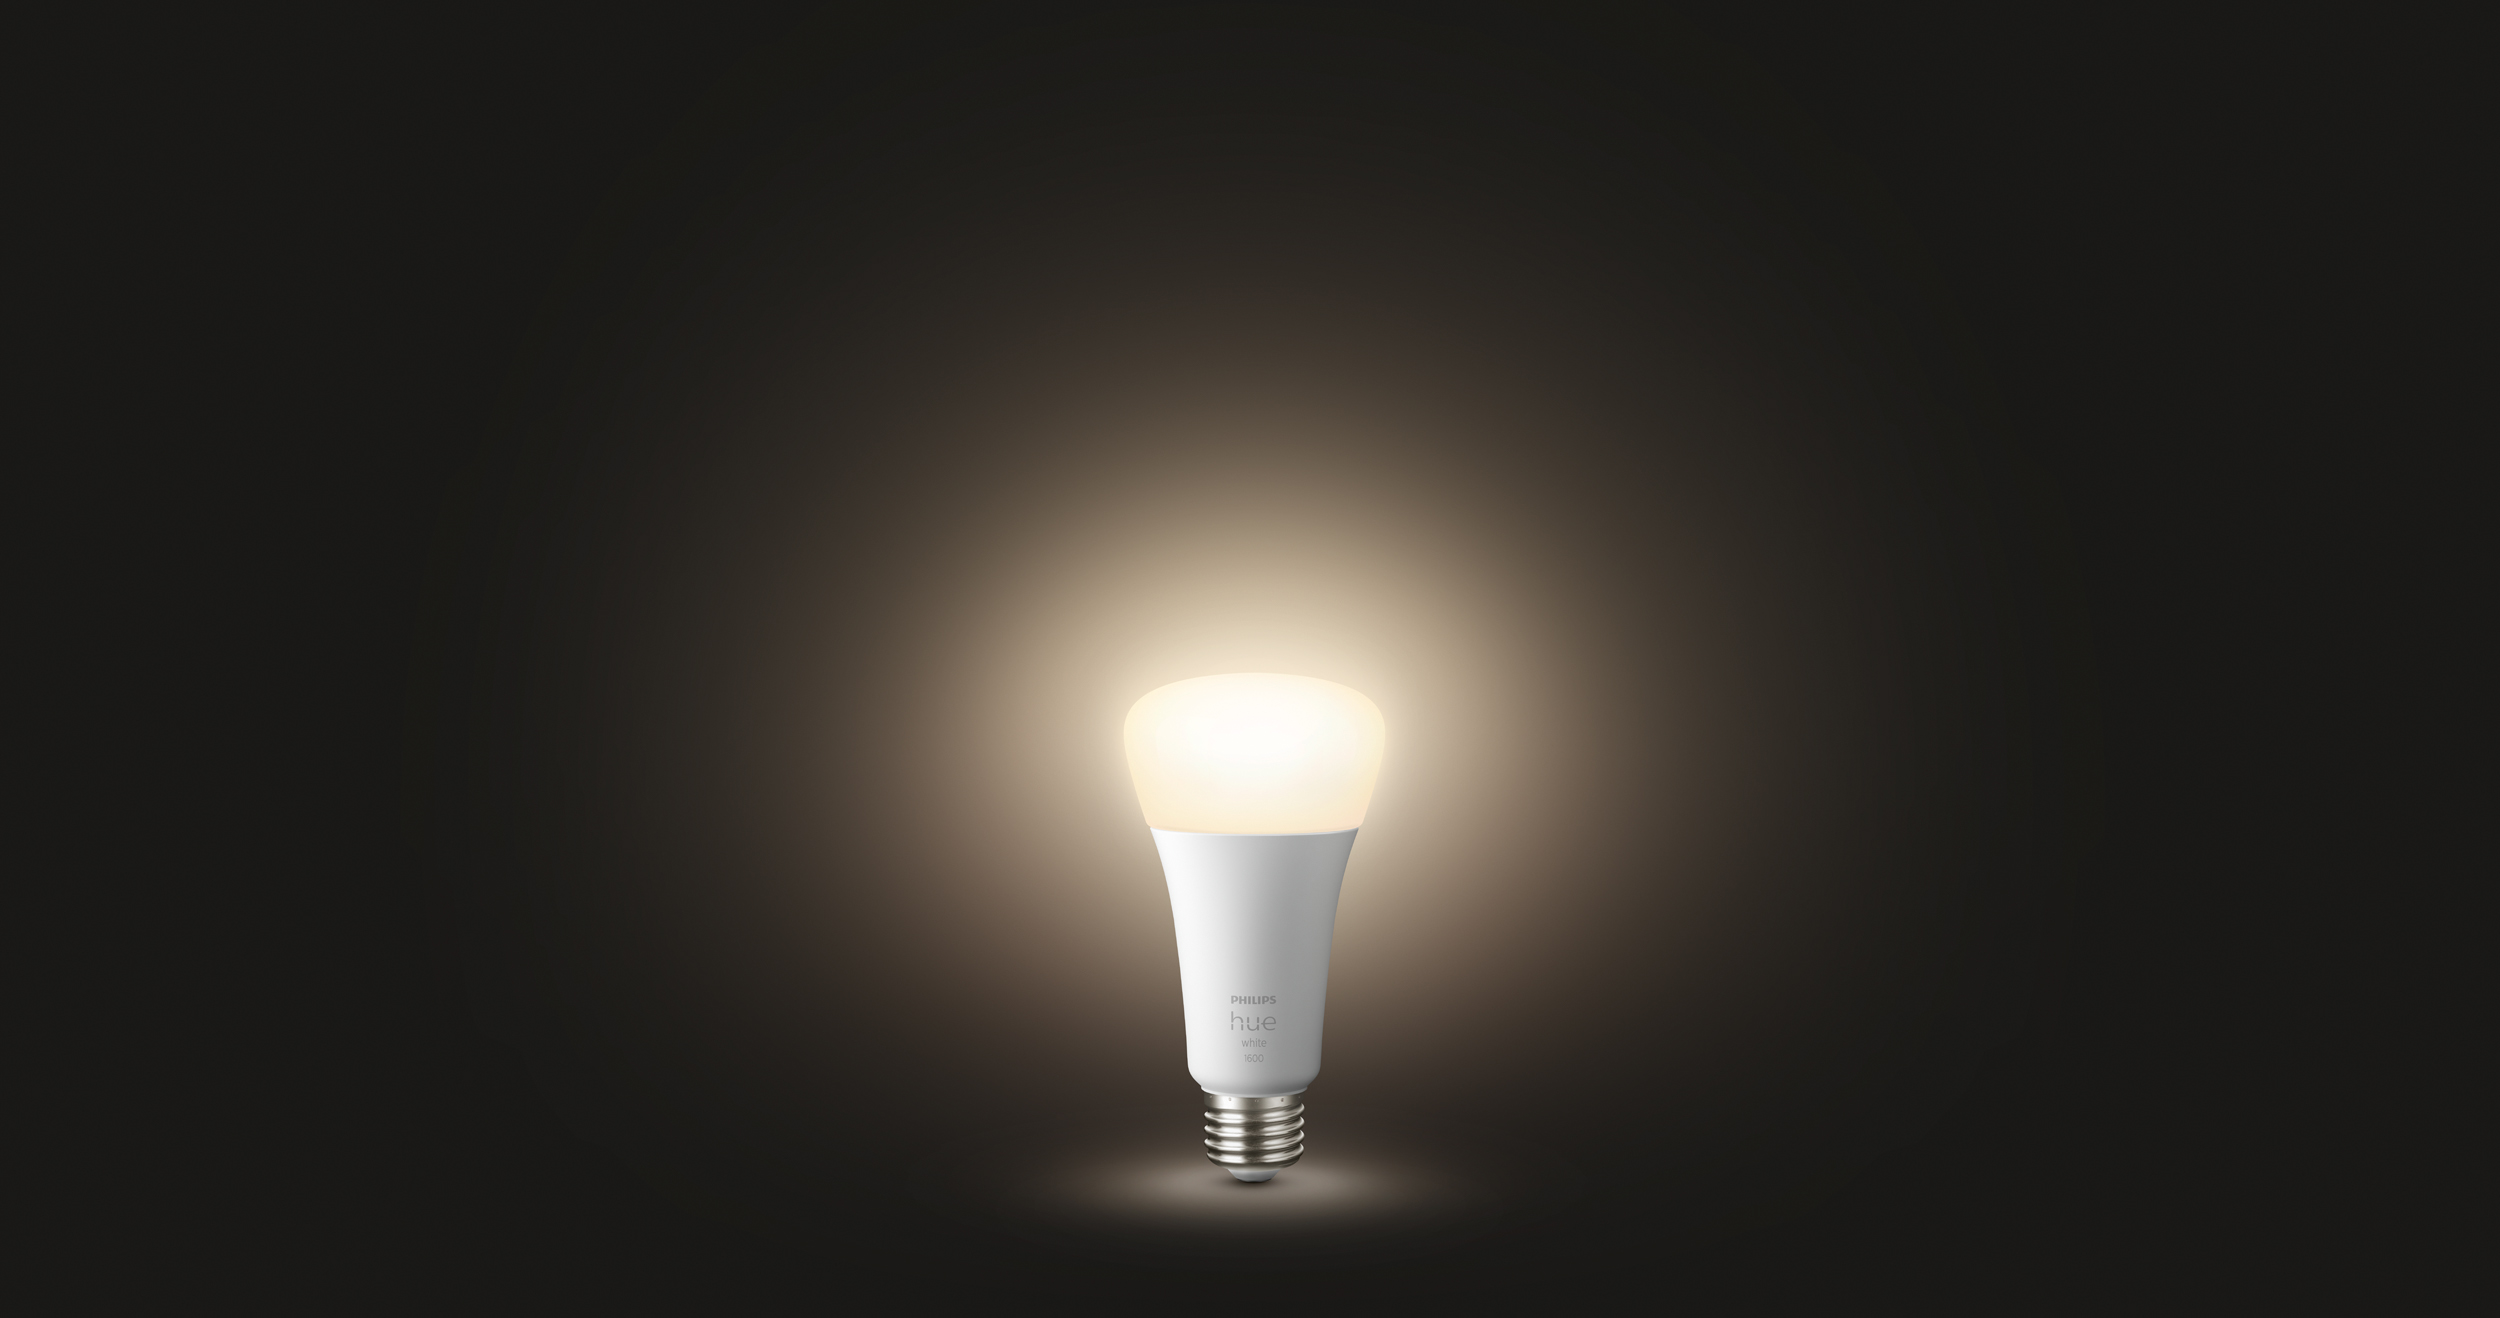 philips hue white a21 product